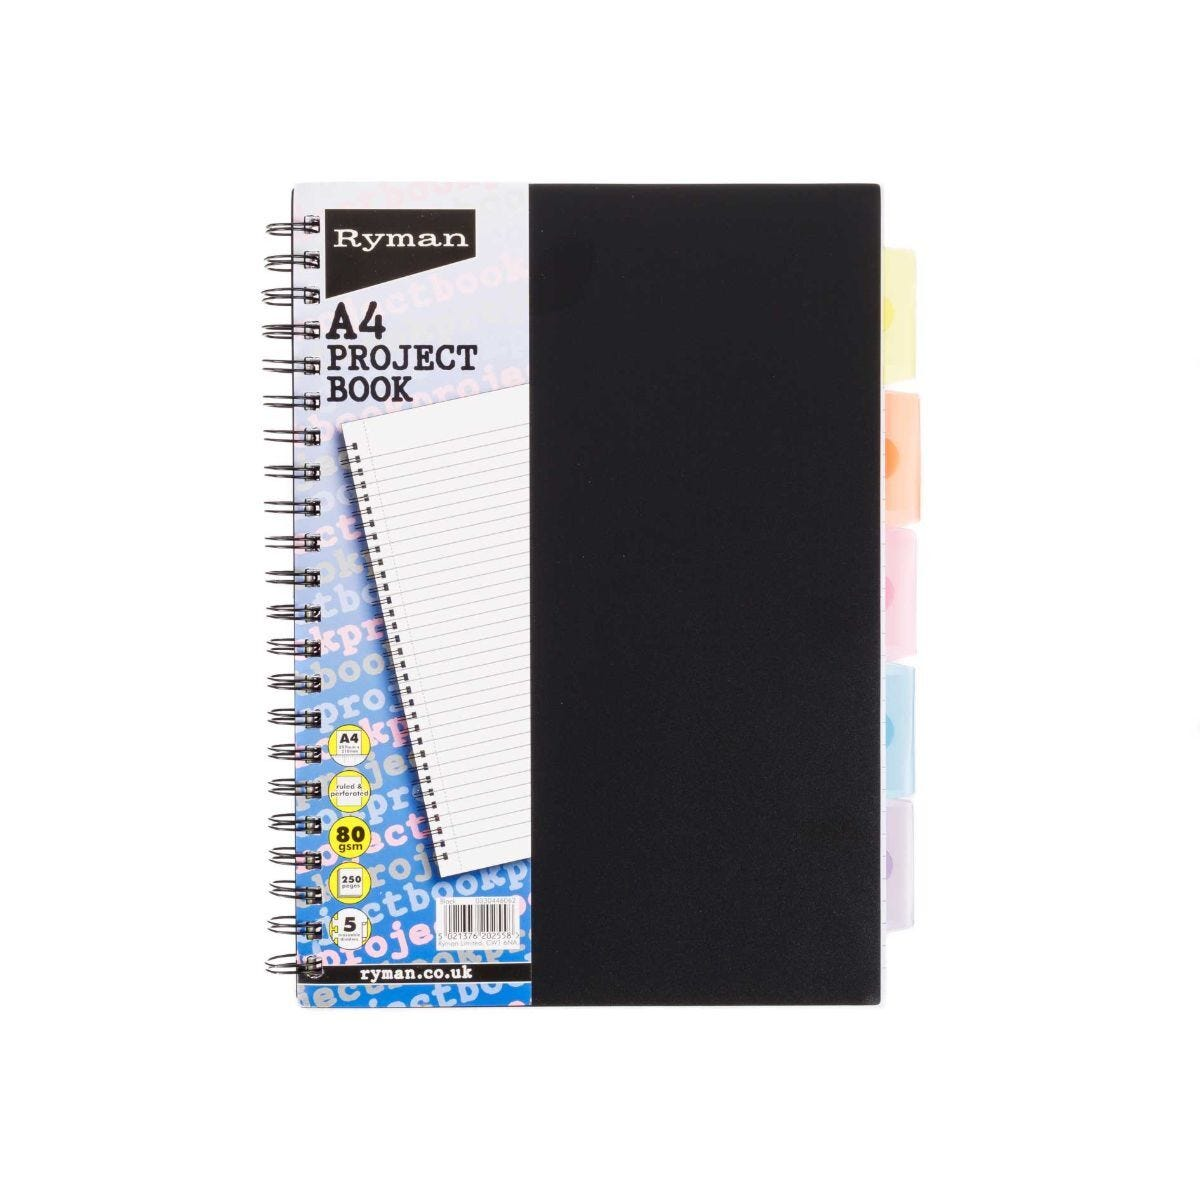 Ryman Project Book A4 5 Dividers Pack of 3 Black